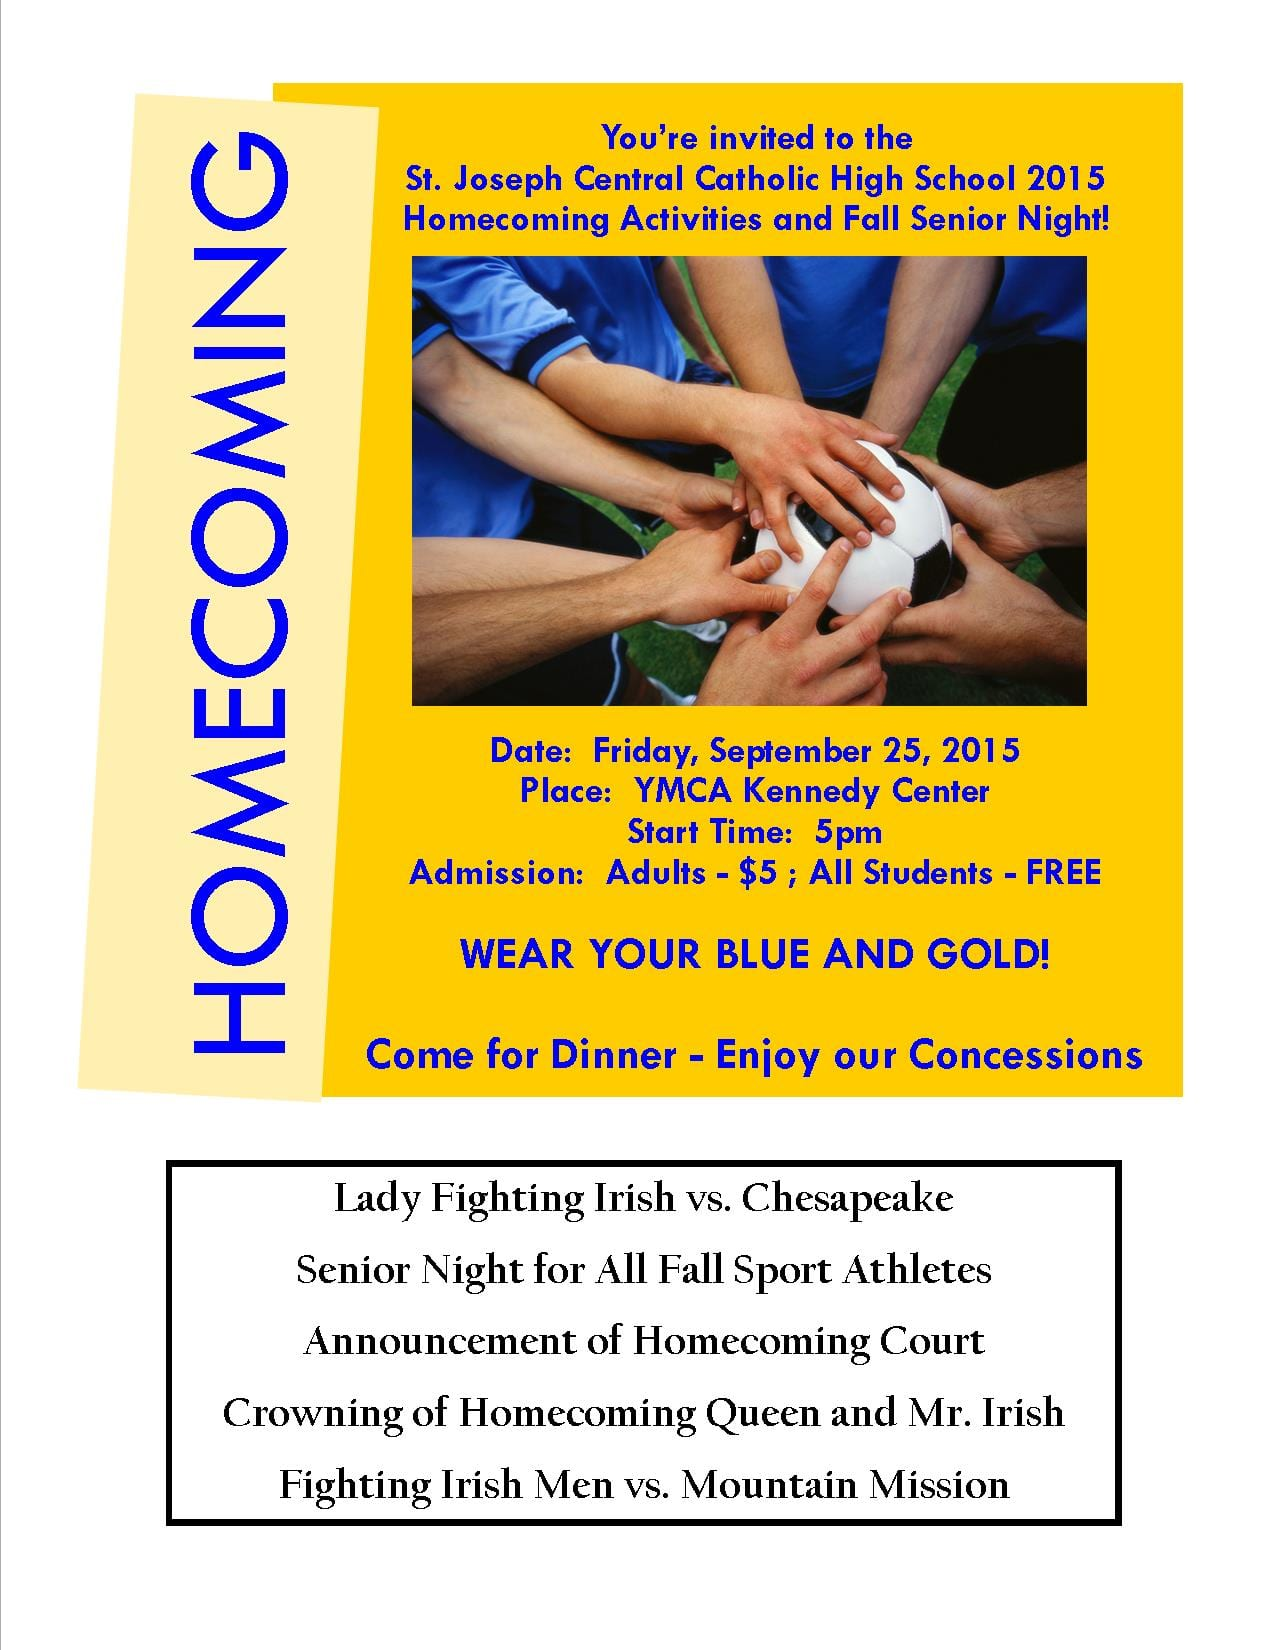 Youre Invited to Our 2015 Homecoming Festivities St Joseph